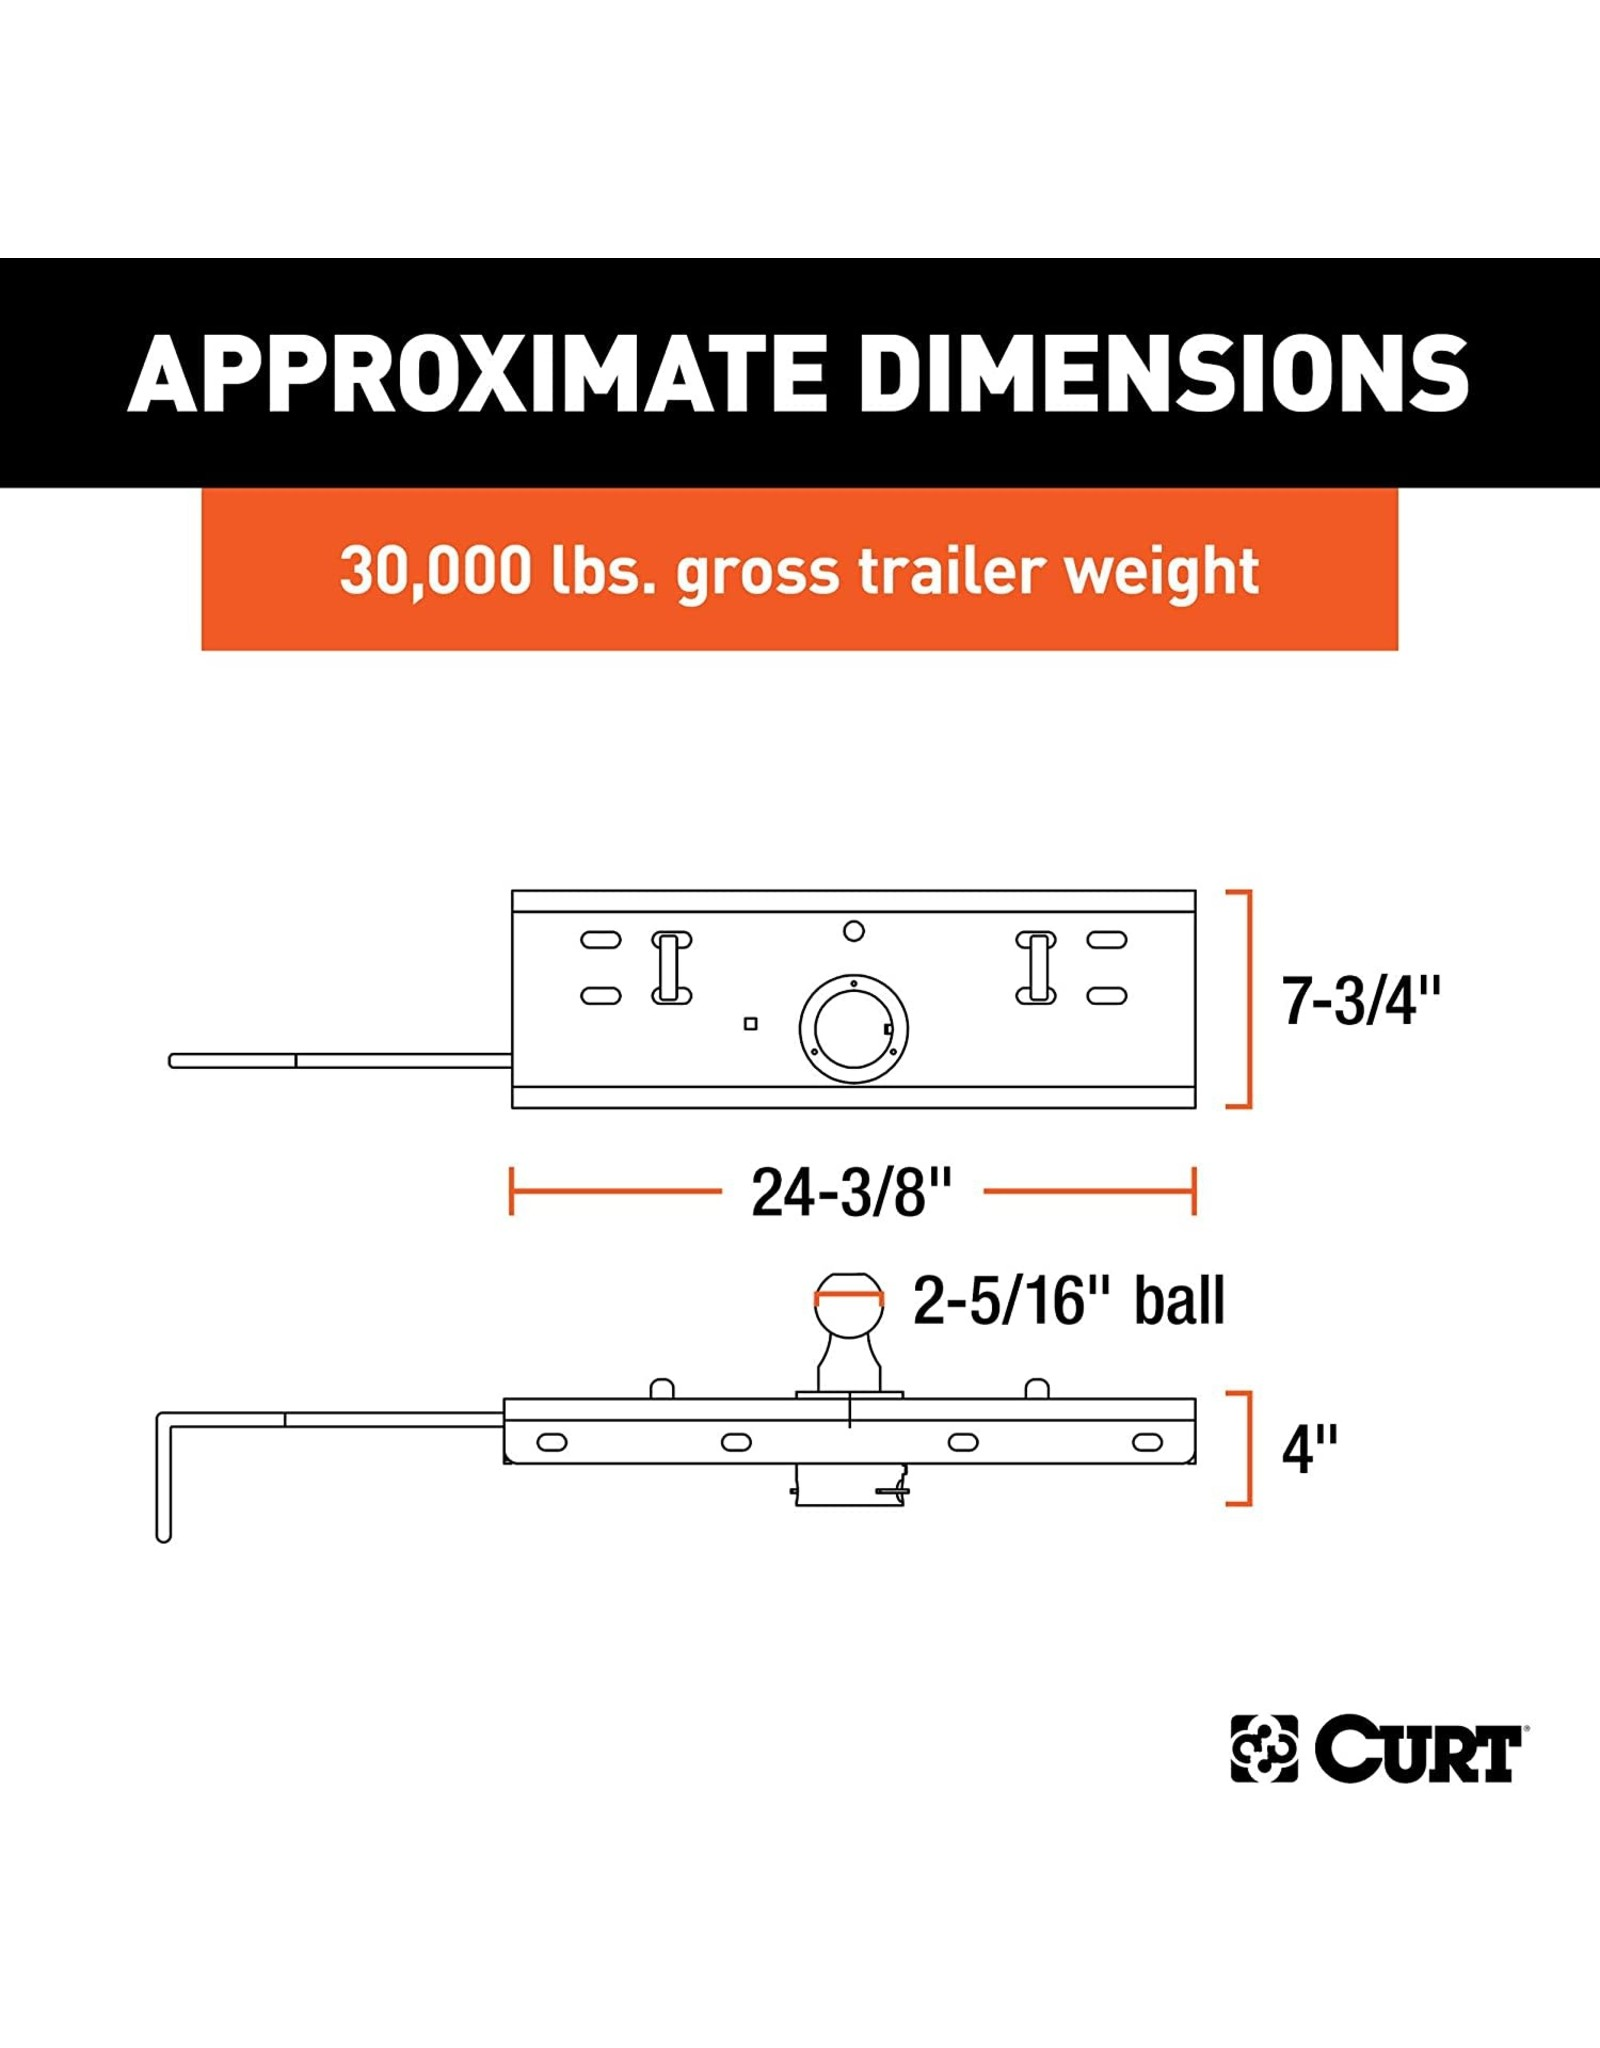 CURT CURT 60607 Double Lock Gooseneck Hitch with 2-5/16-Inch Flip-and-Store Ball, 30,000 lbs